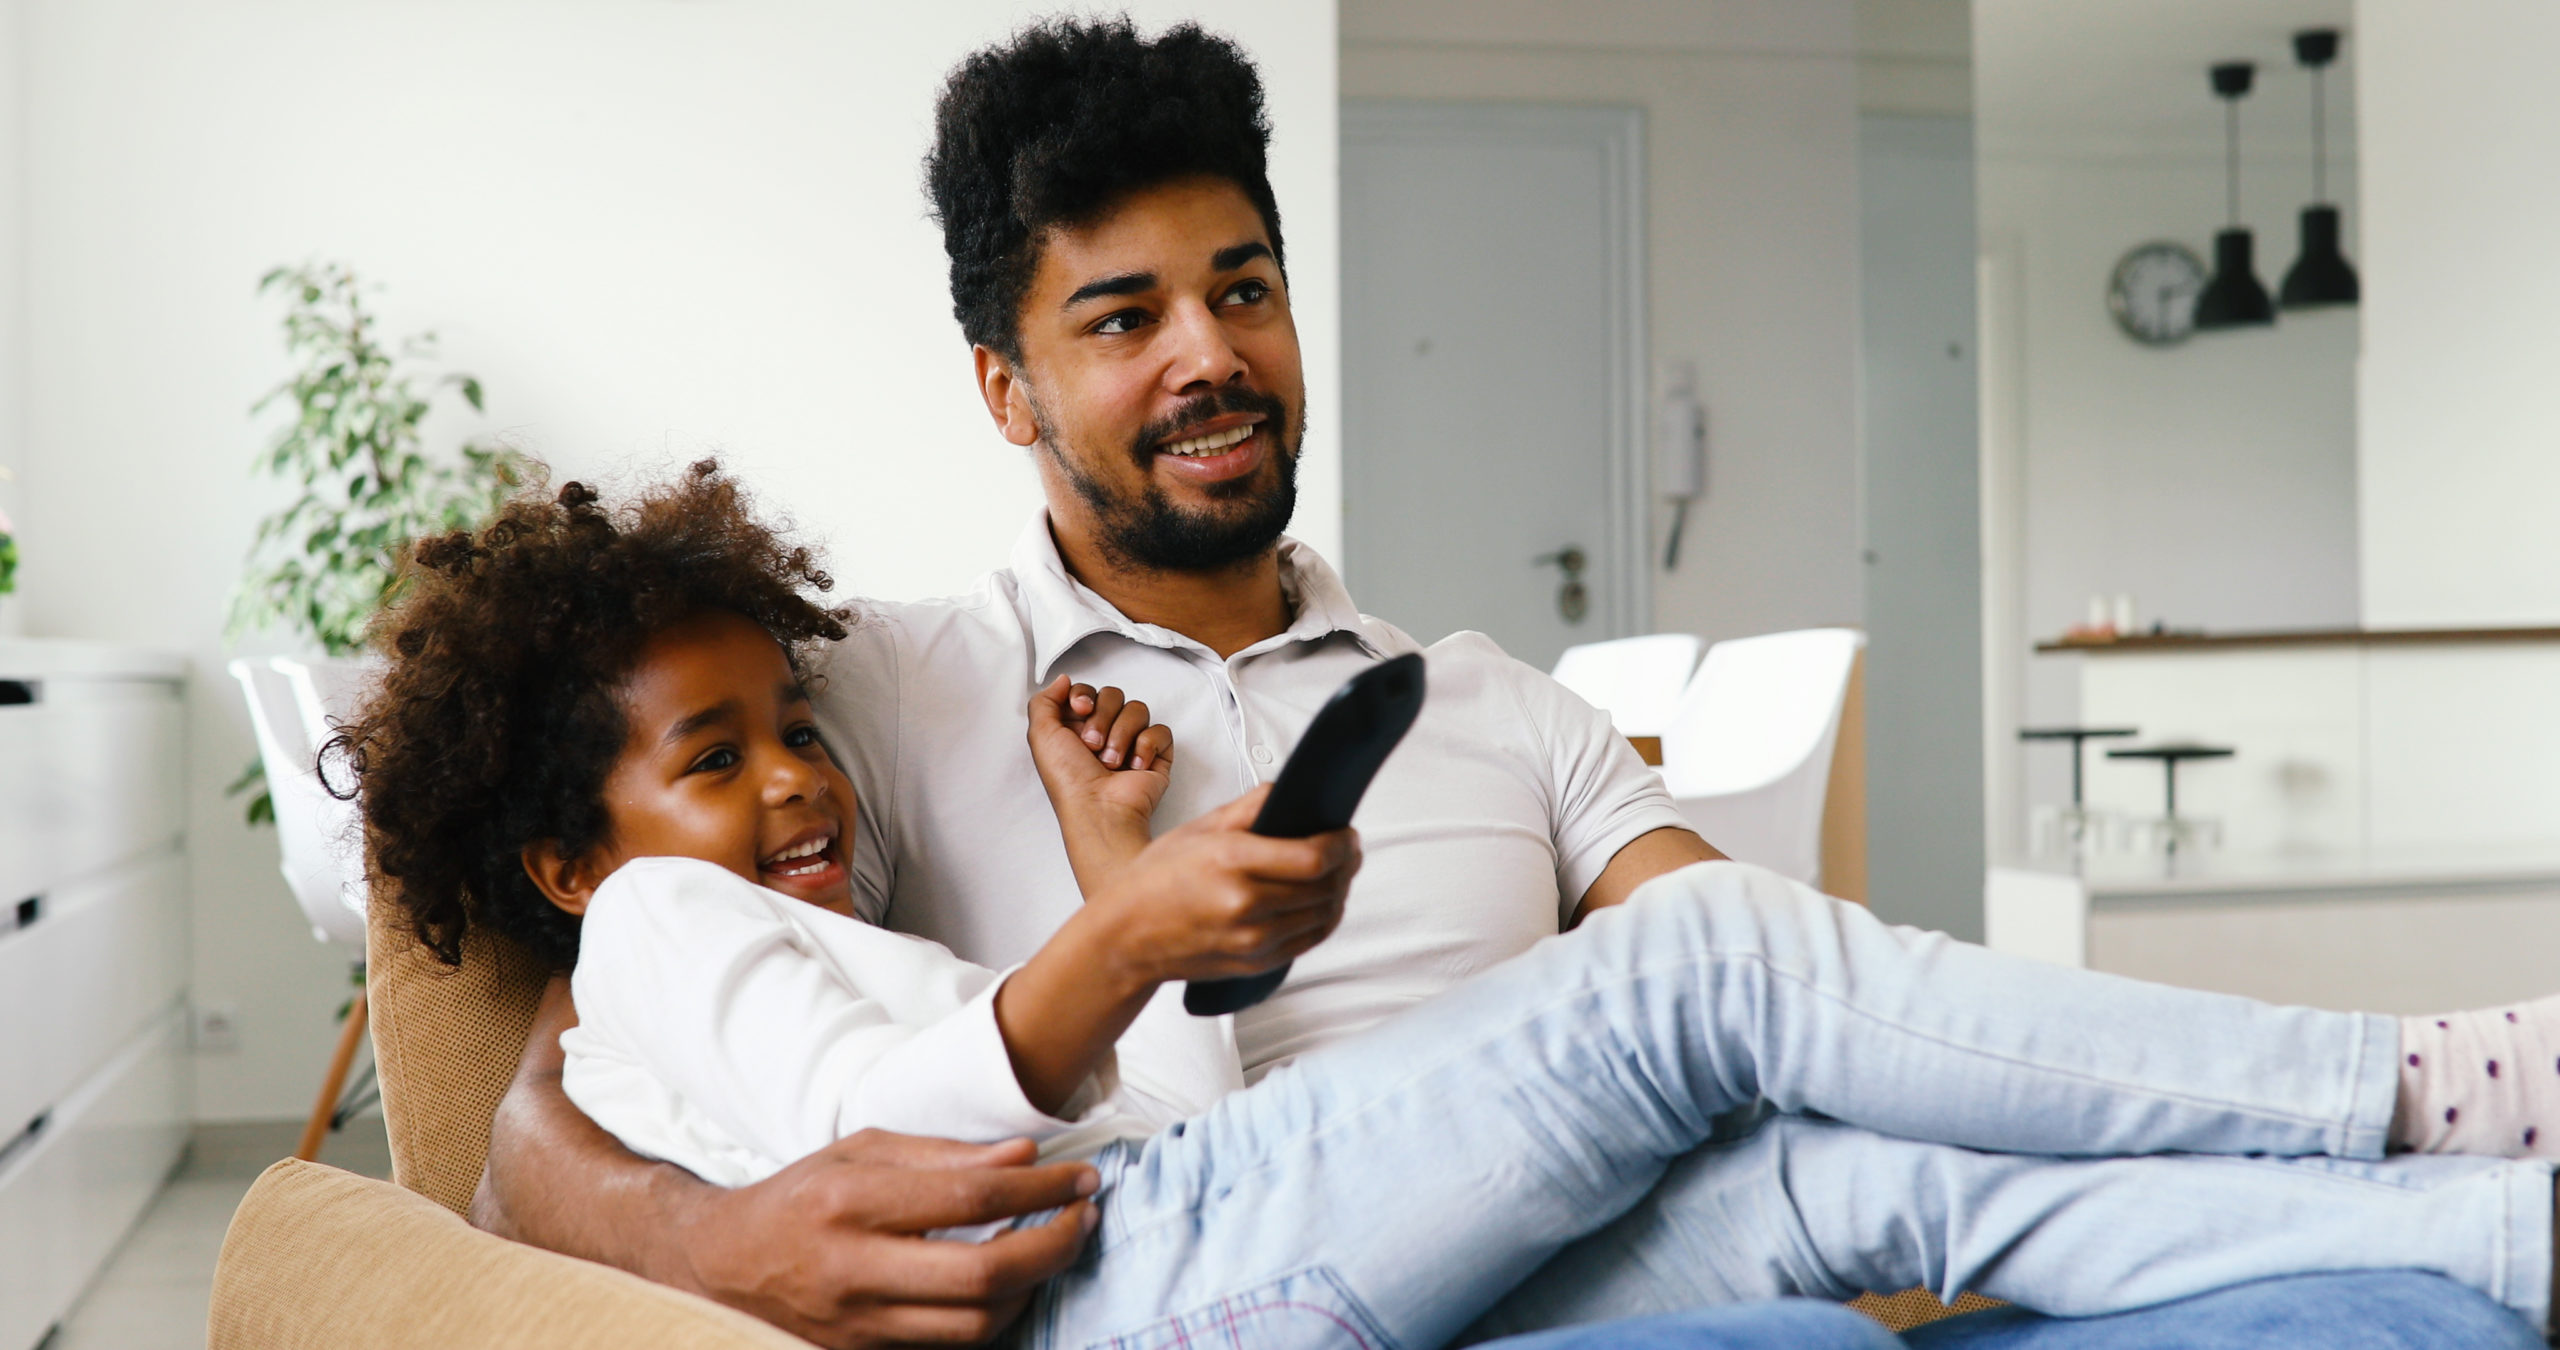 https://elements.envato.com/father-and-daughter-watching-television-65HP7G9